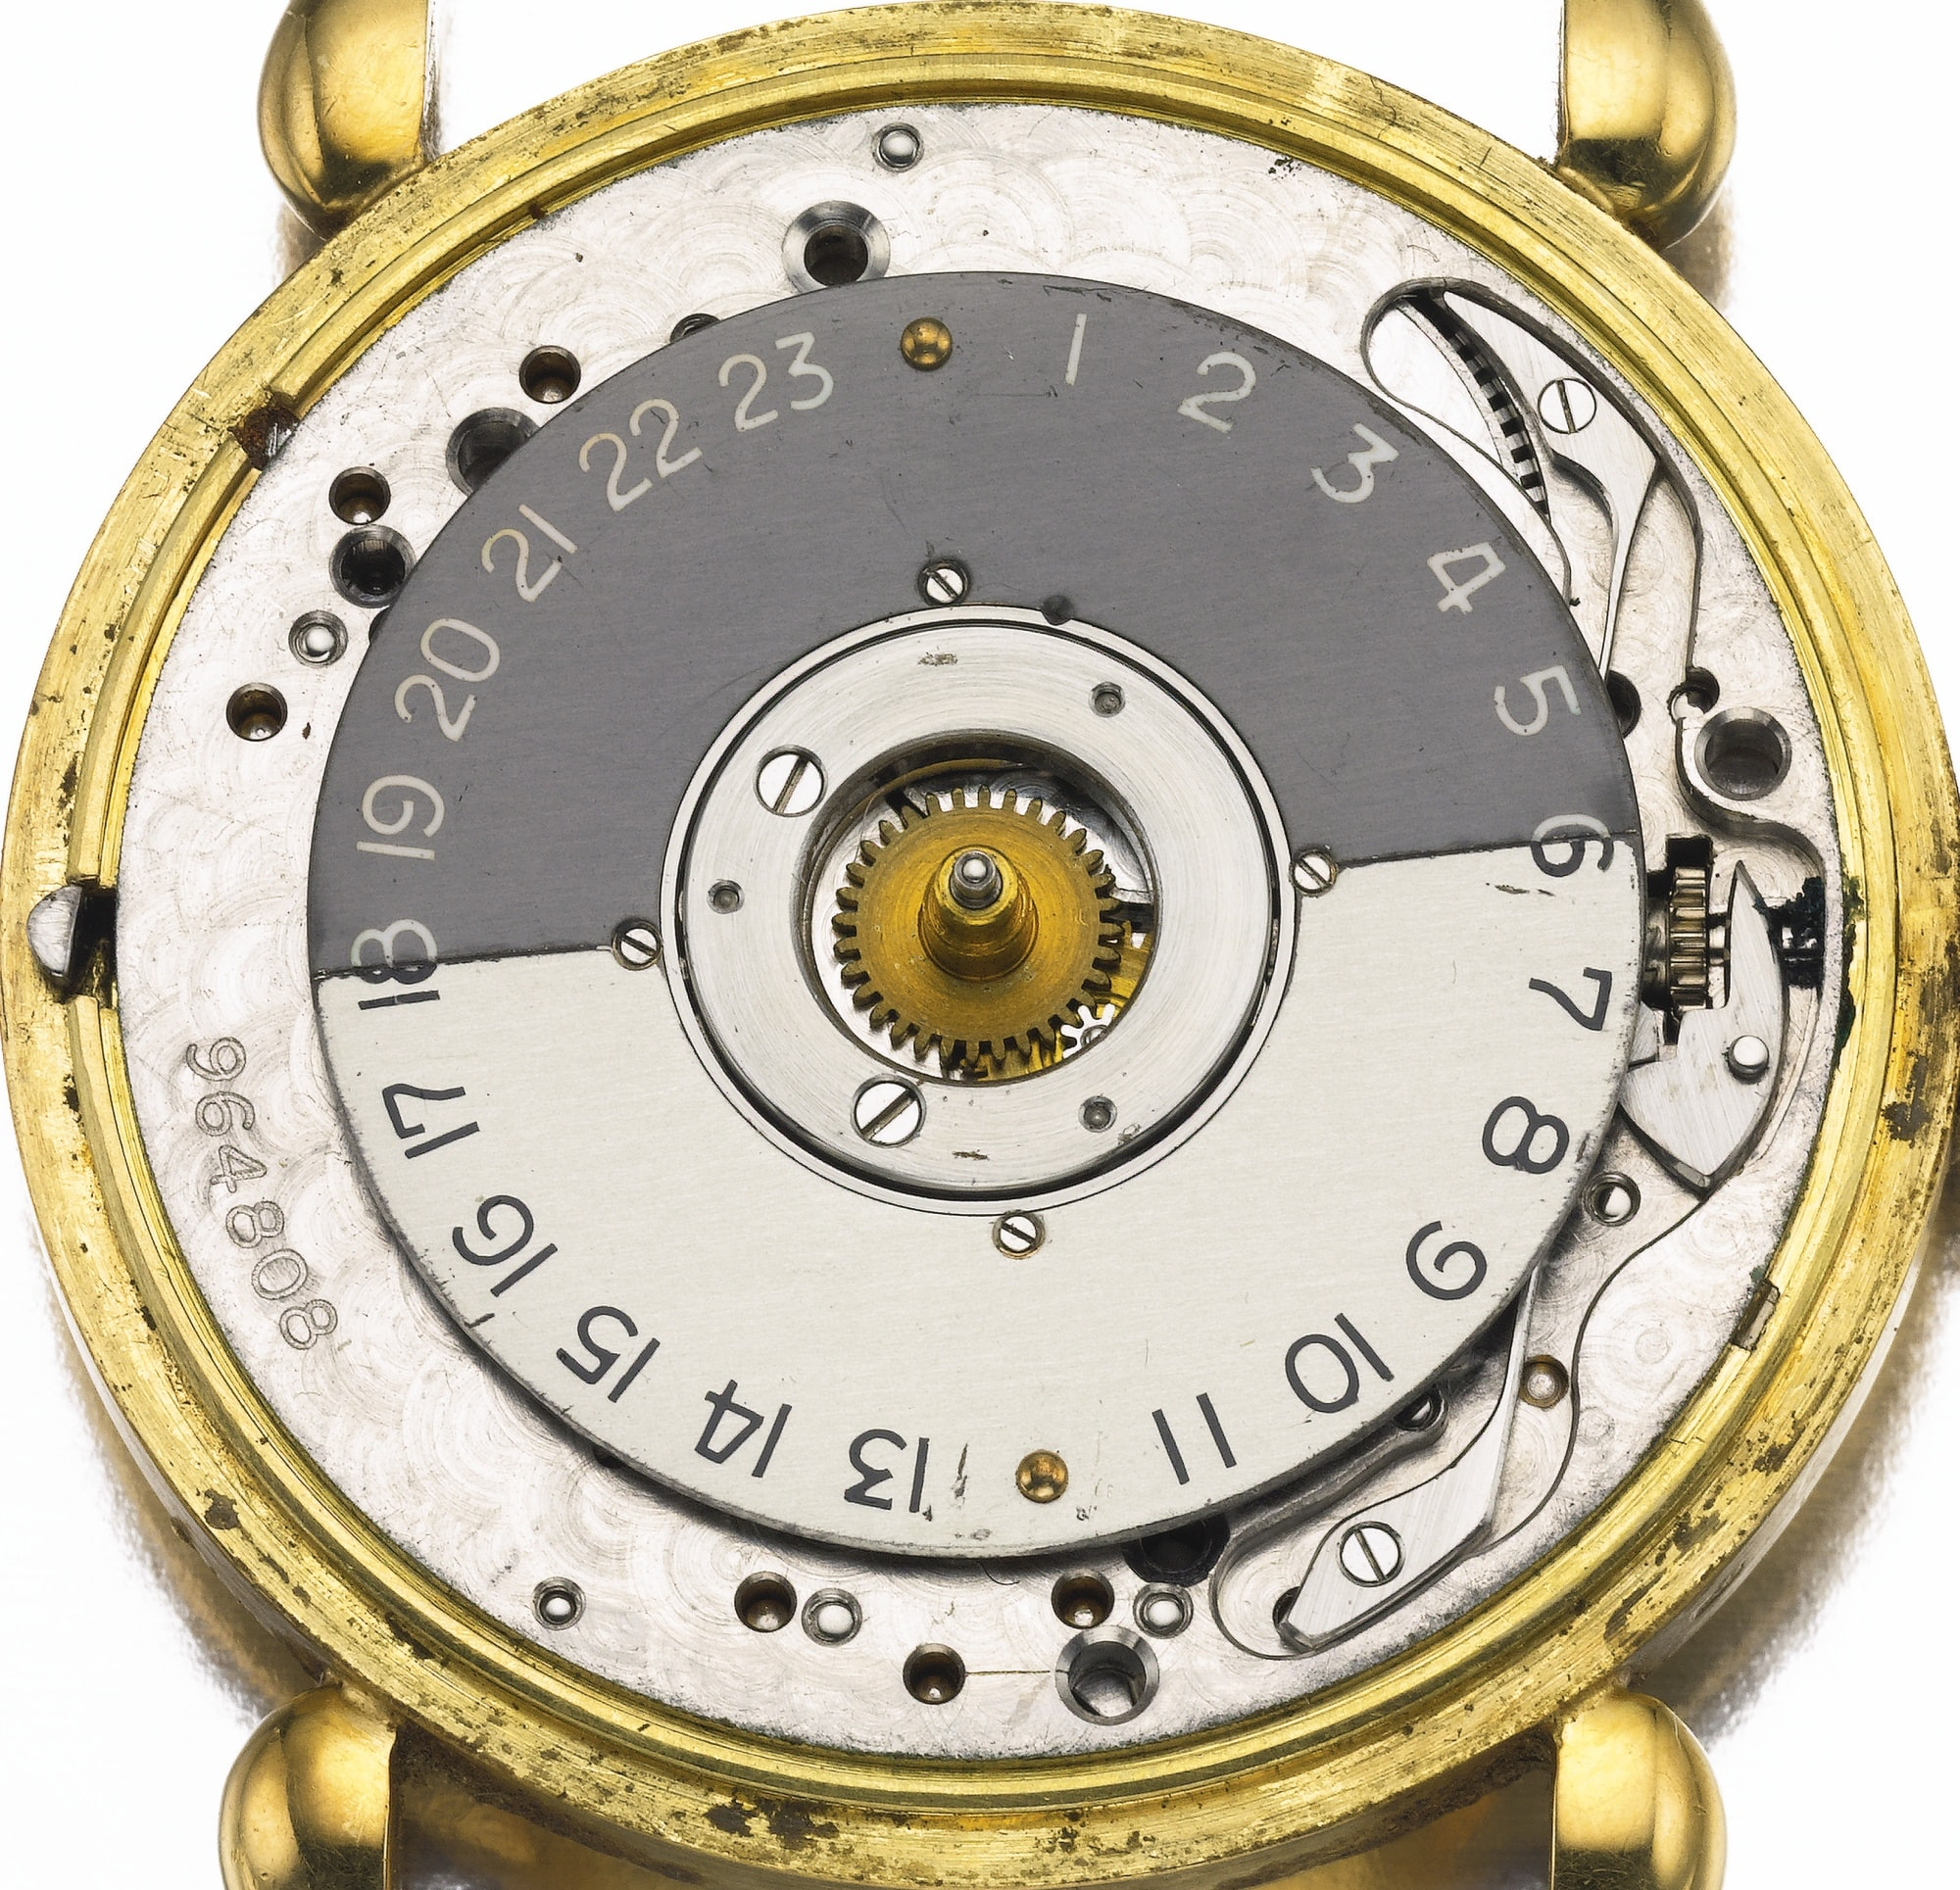 A Patek Philippe Reference 1415 World Timer With Eurasia Enamel Dial, One Of Only Two Known, Coming Up At Sotheby's A Patek Philippe Reference 1415 World Timer With Eurasia Enamel Dial, One Of Only Two Known, Coming Up At Sotheby's 2